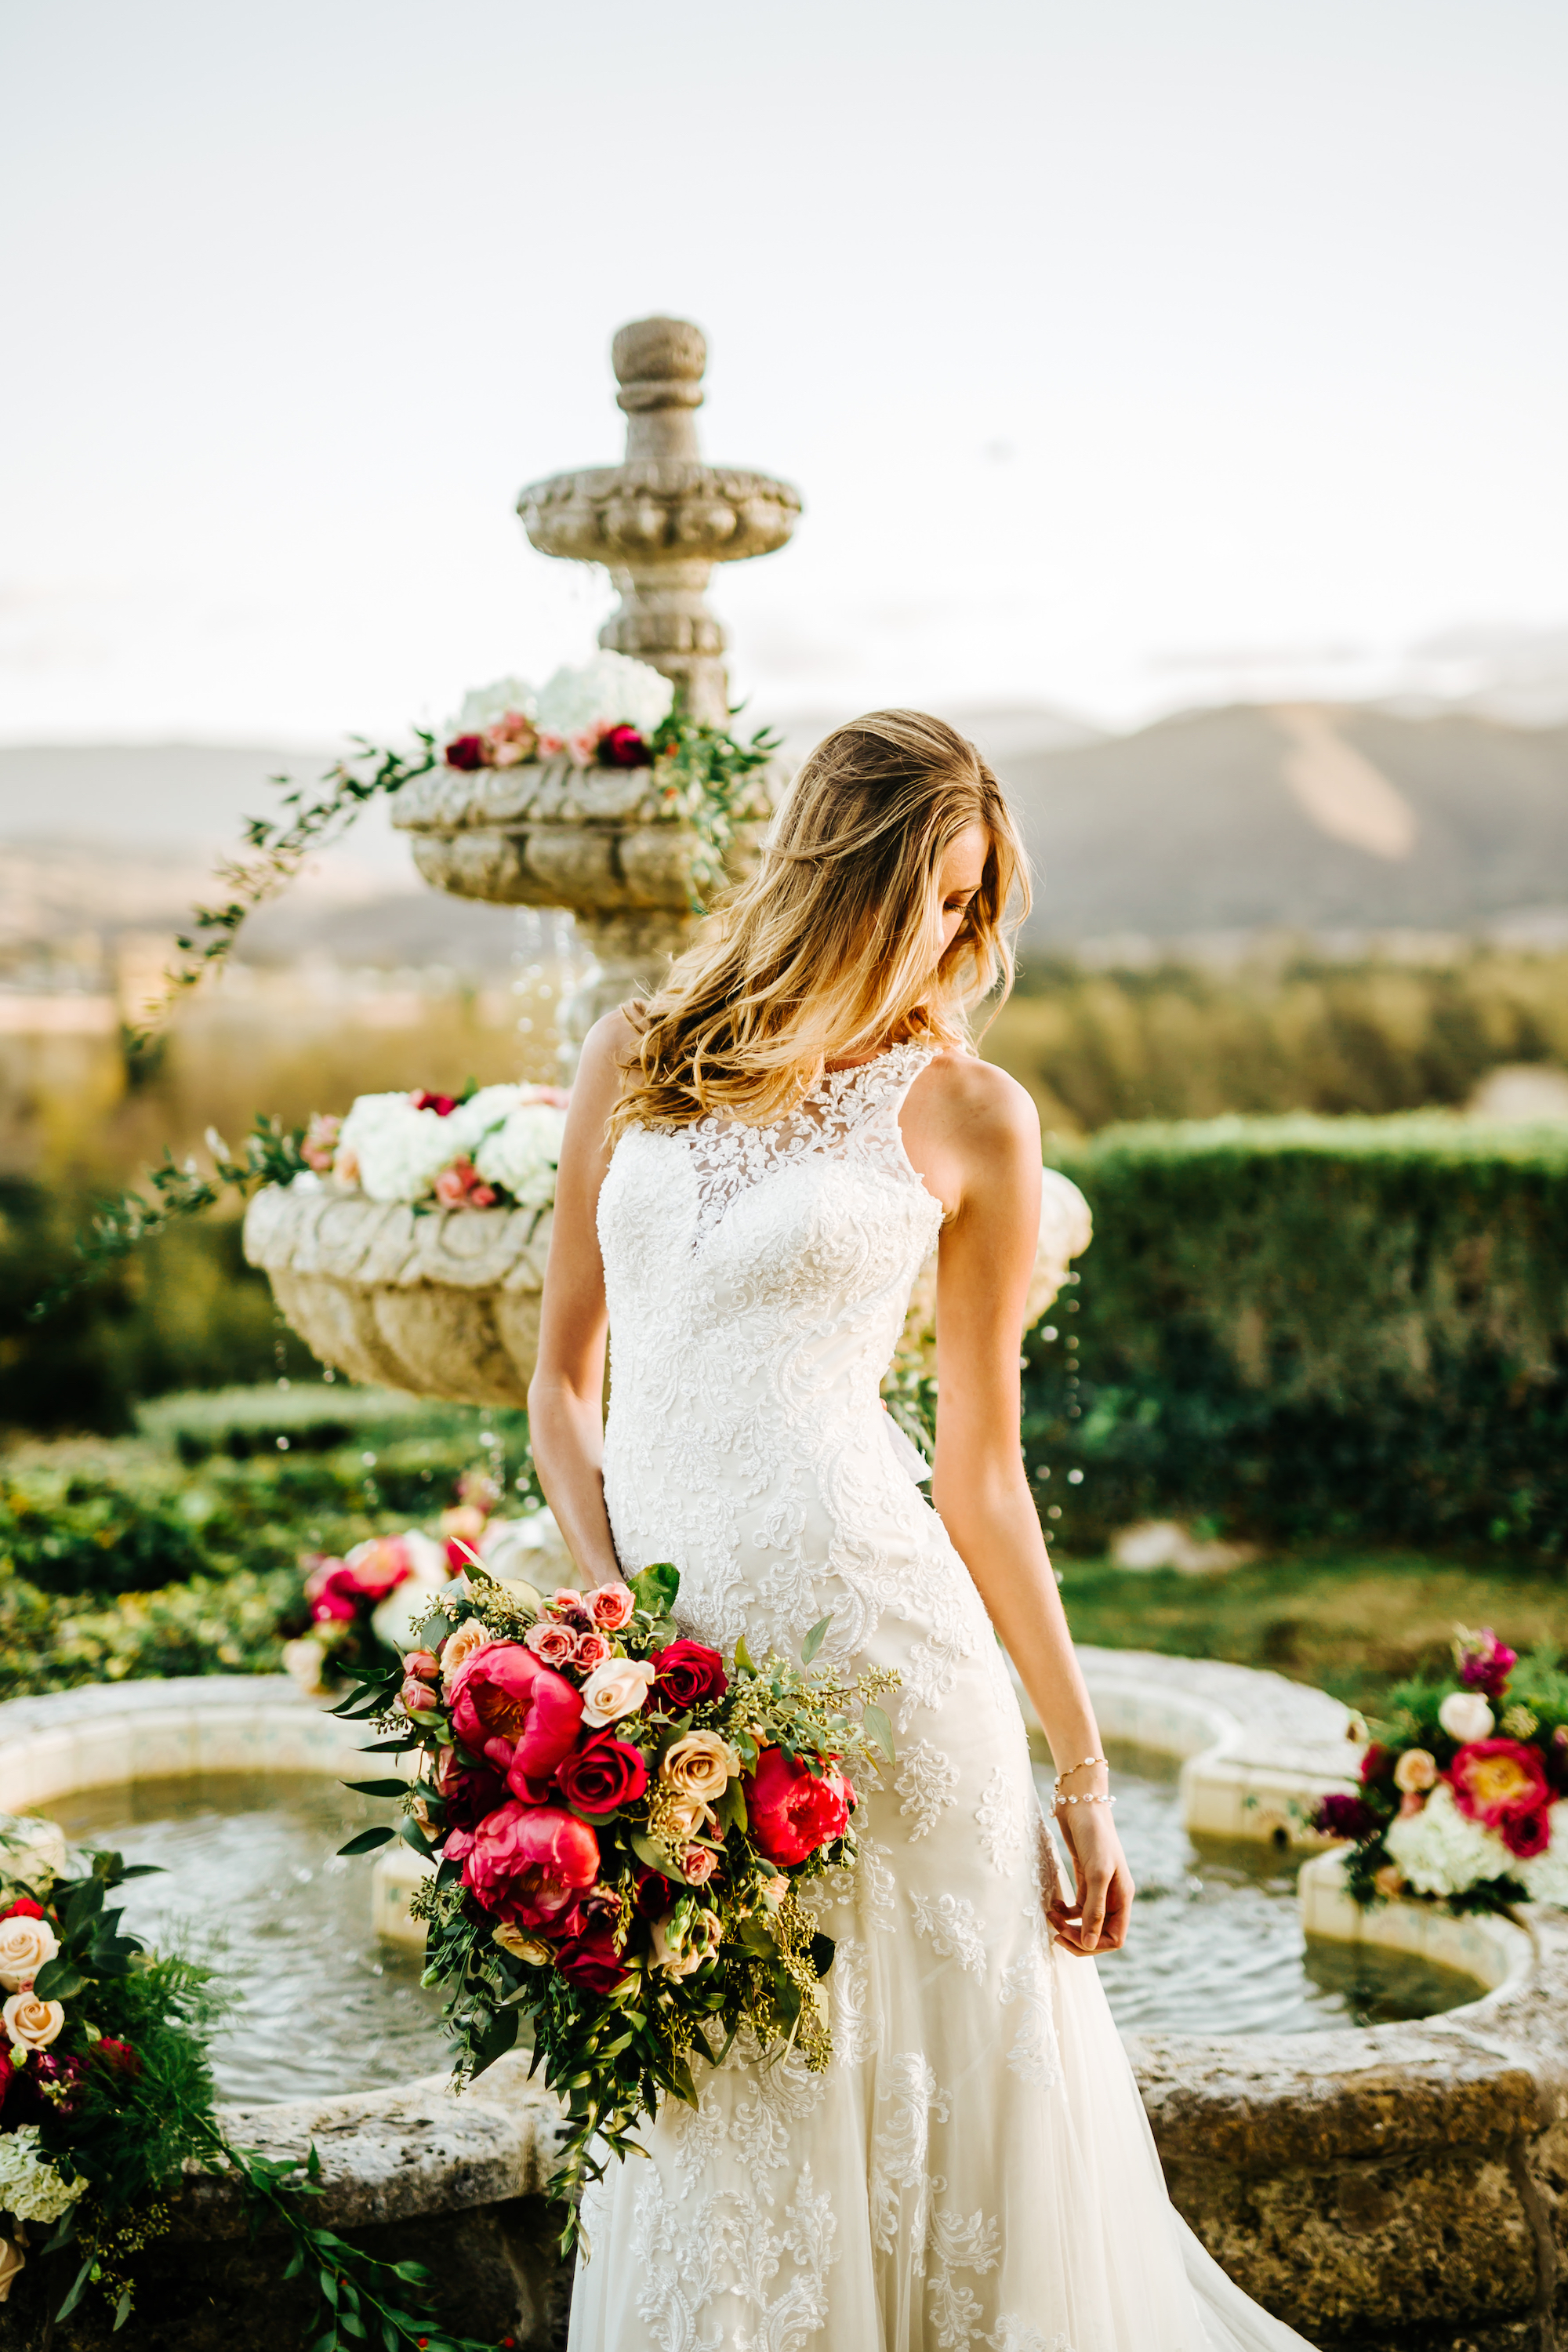 Lush Blush Whispering Rose Ranch Wedding3.jpg